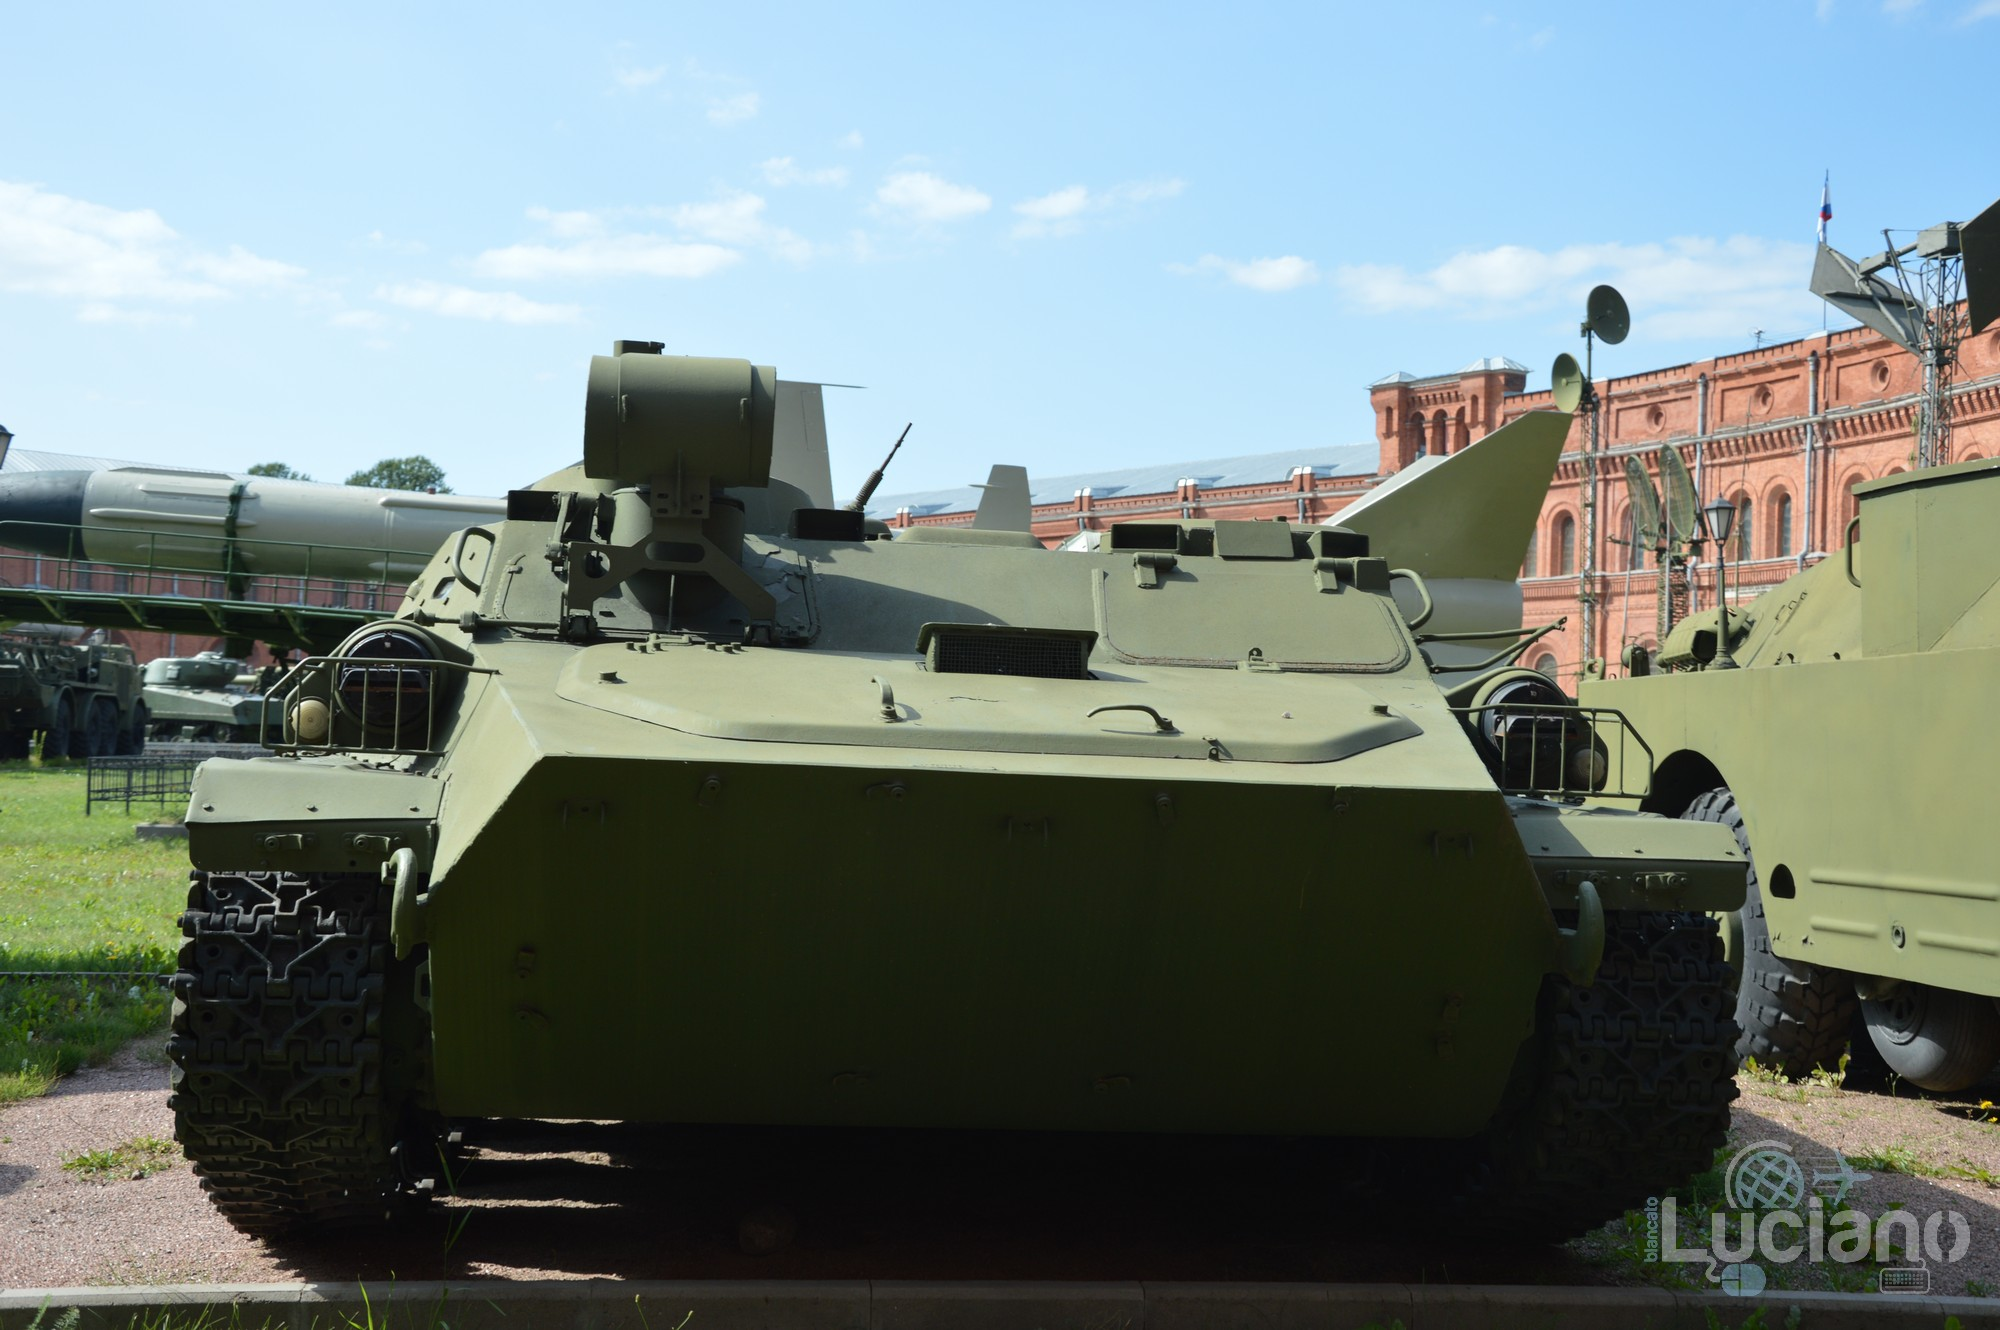 Military-Historical-Museum-of-Artillery-Engineer-and-Signal-Corps-St-Petersburg-Russia-Luciano-Blancato- (35)